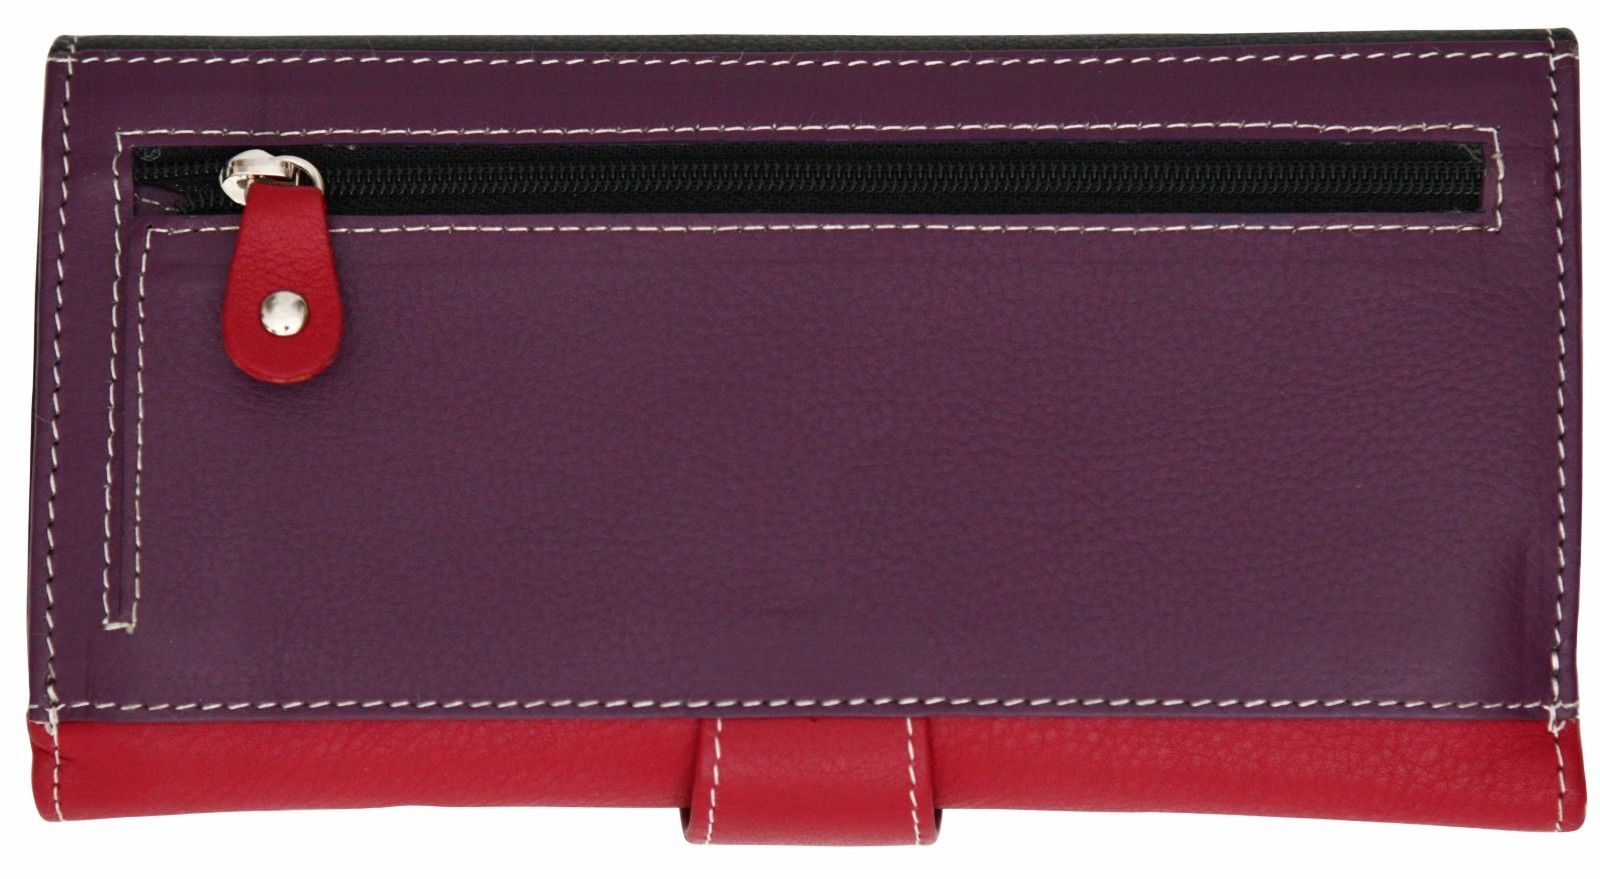 Felda-RFID-Ladies-Leather-Soft-Wallet-Large-Capacity-Purse-Womens-Multi-24-Card miniatuur 25